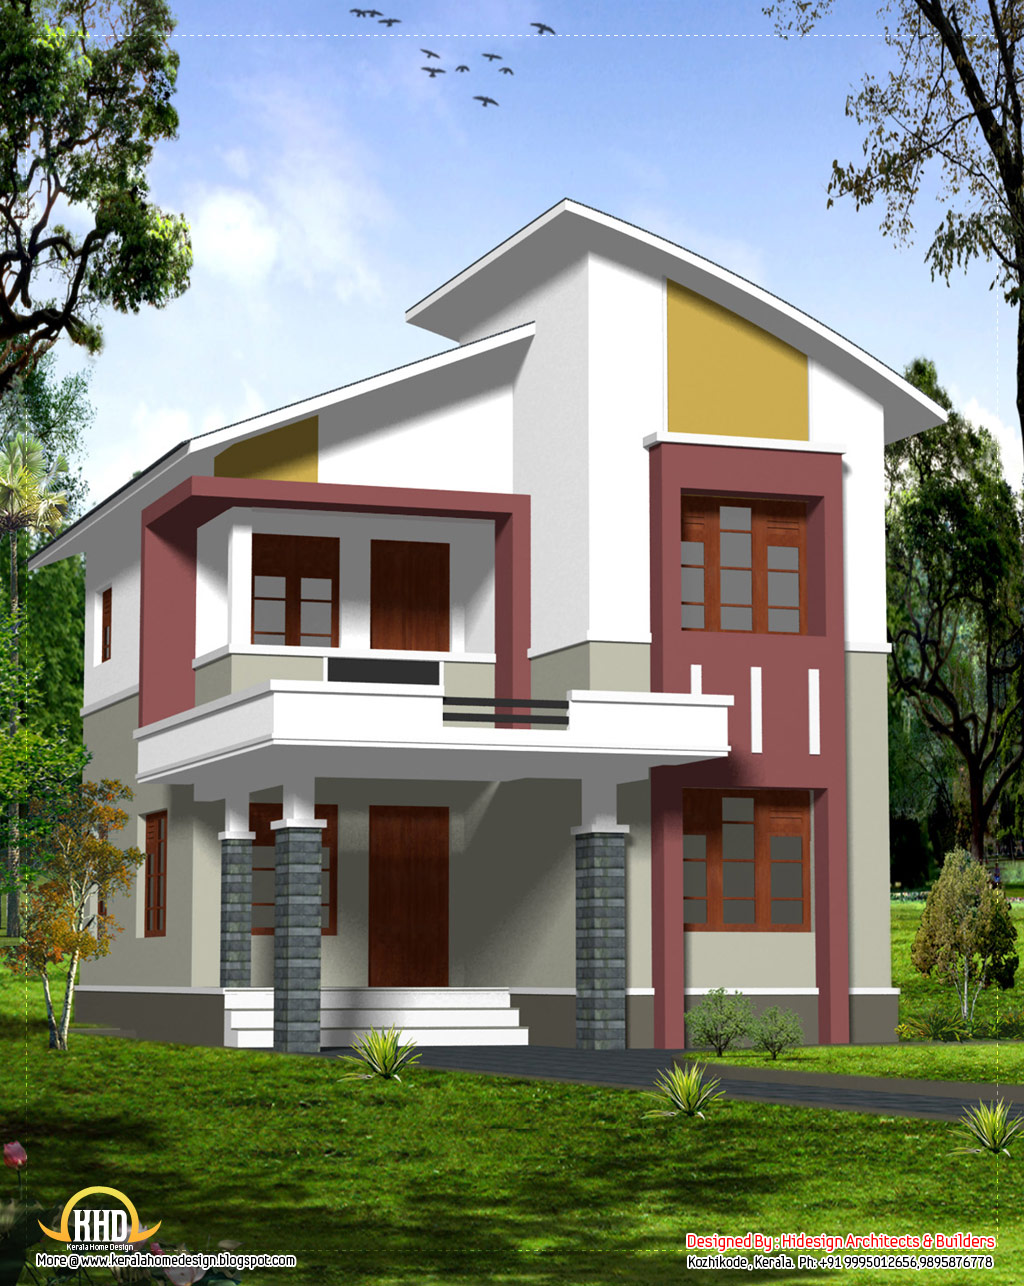 Budget home design 2140 sq ft kerala home design and for Window design for house in india